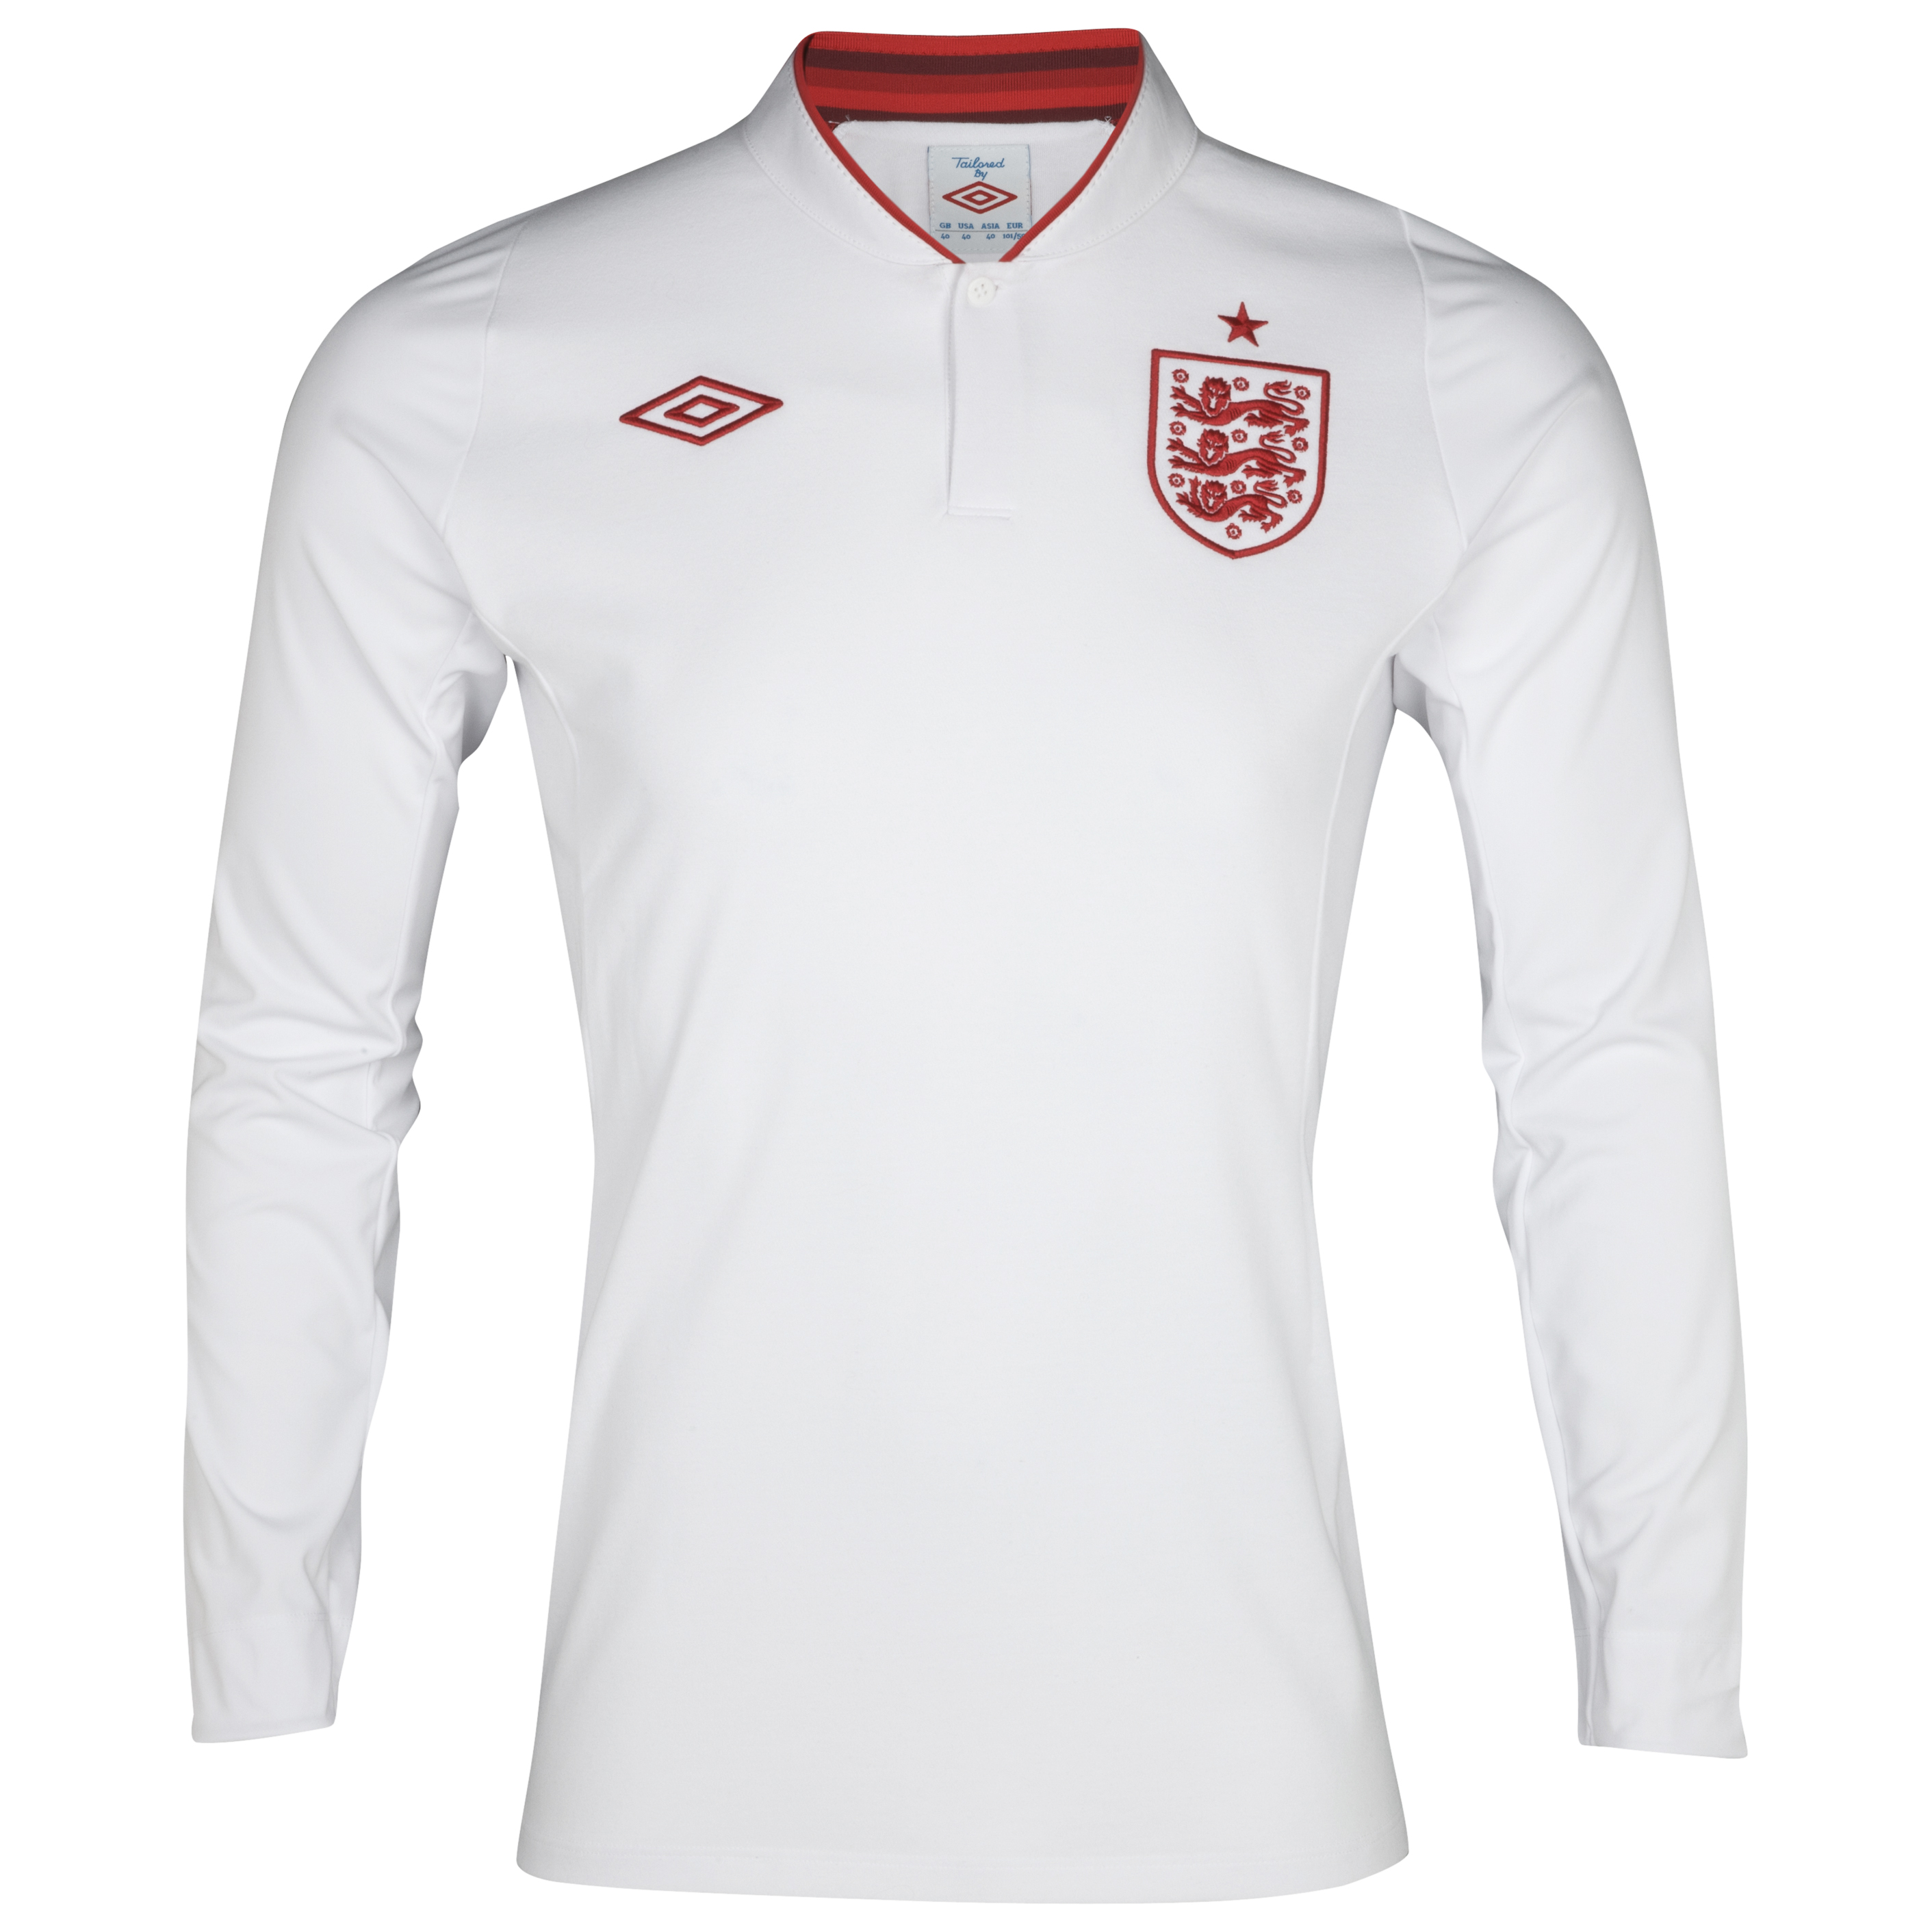 England Home Shirt 2012/13 - Long Sleeve - Boys